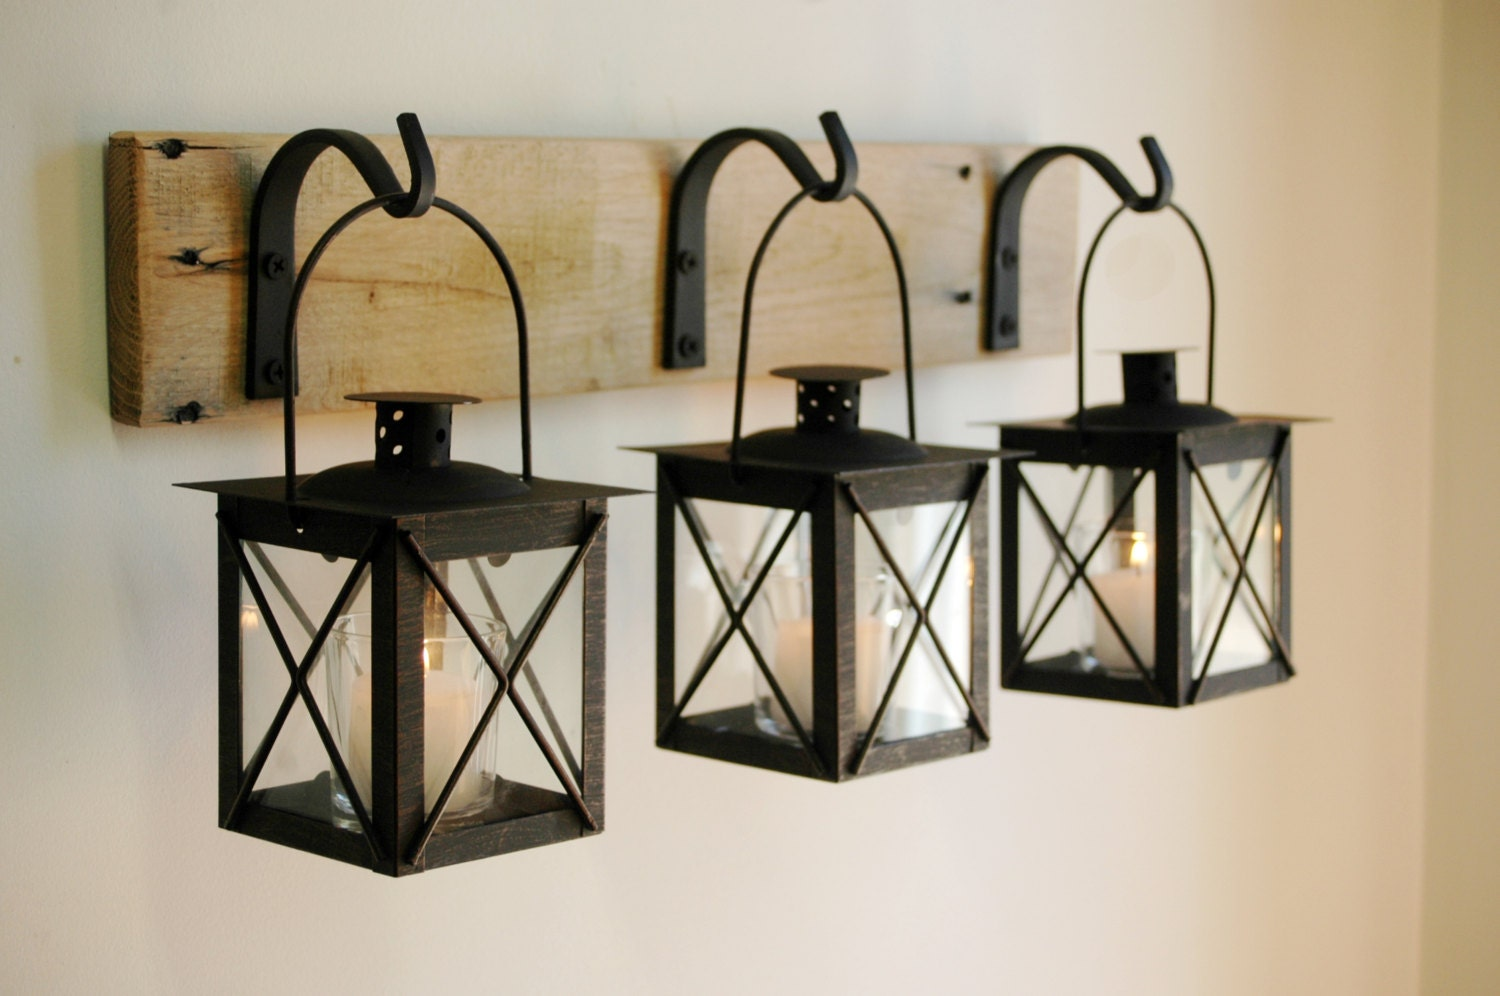 Black lantern trio wall decor home decor rustic decor for Outdoor home accessories